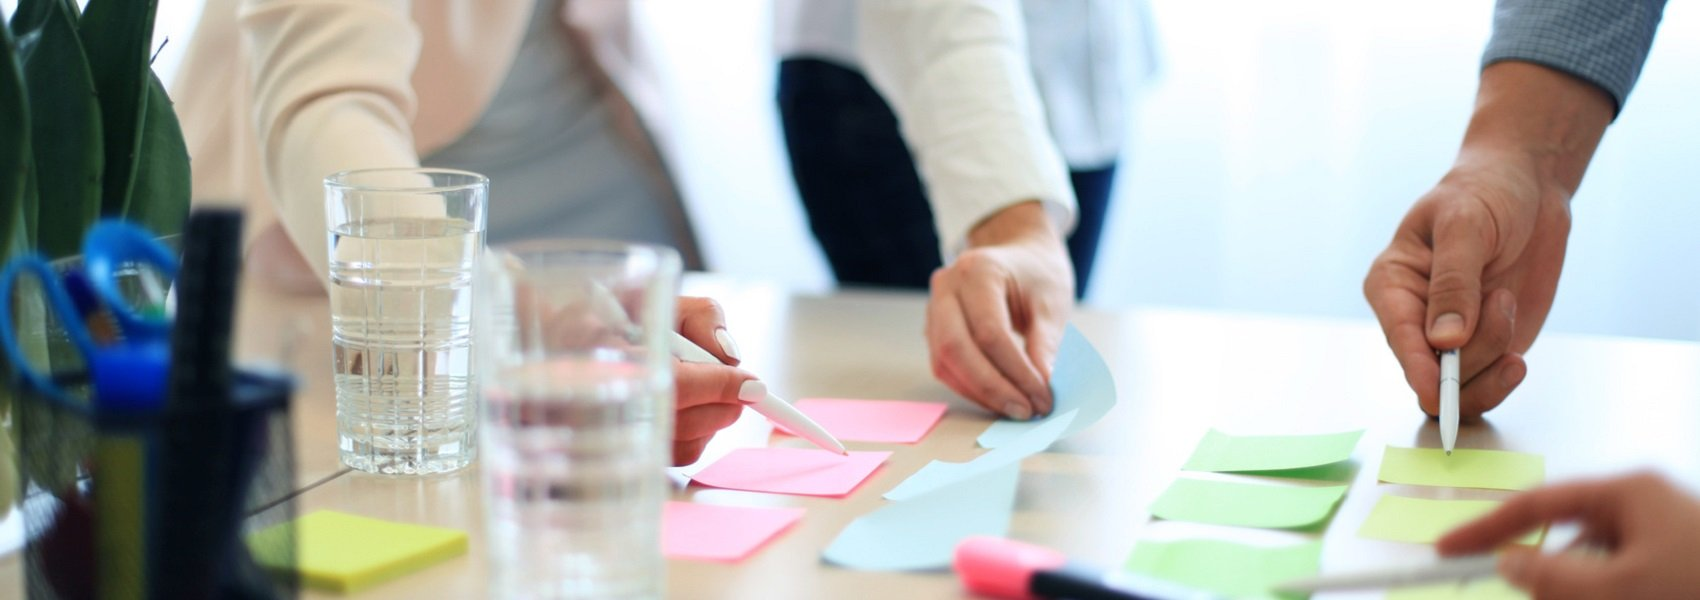 Teamworkshops und Trainings